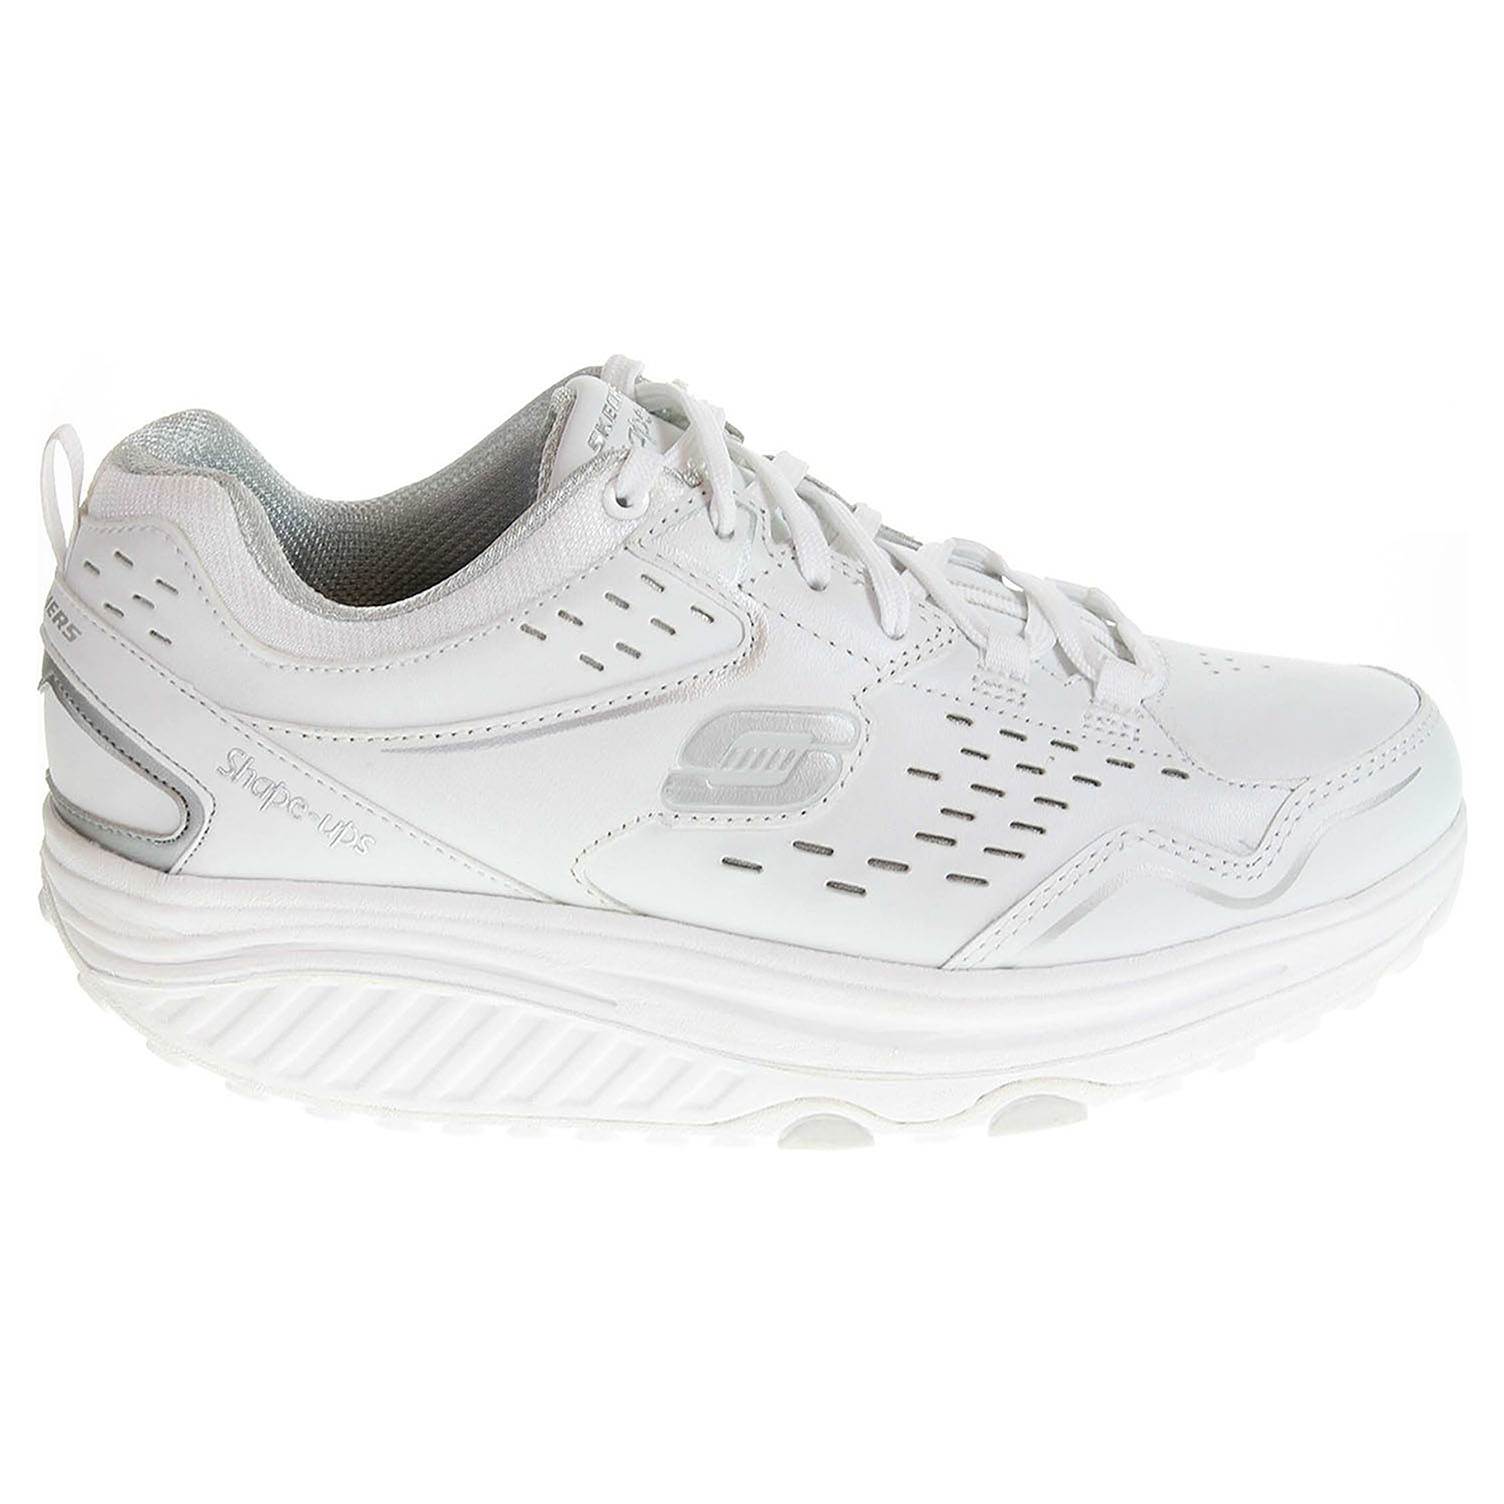 Skechers Perfect Comfort white-silver